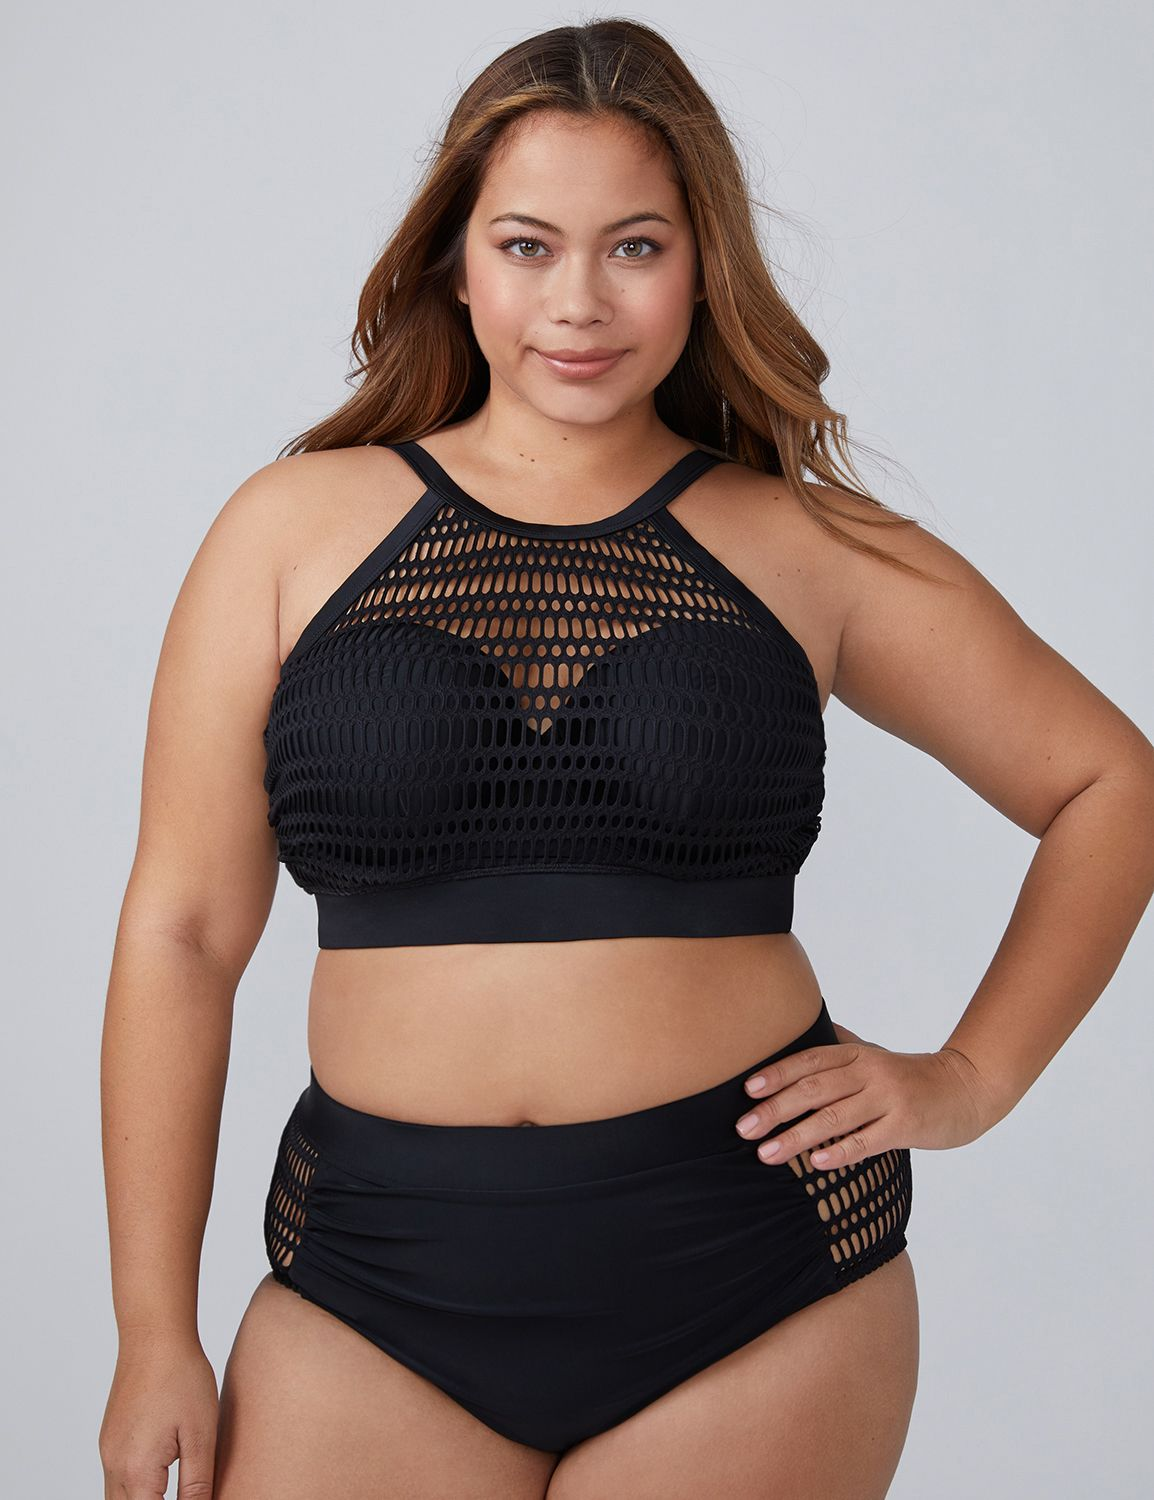 Lane Bryant Womens Crochet Mesh High-Neck Swim Bikini Top With Built-In Bandeau Bra 46D Swim Black